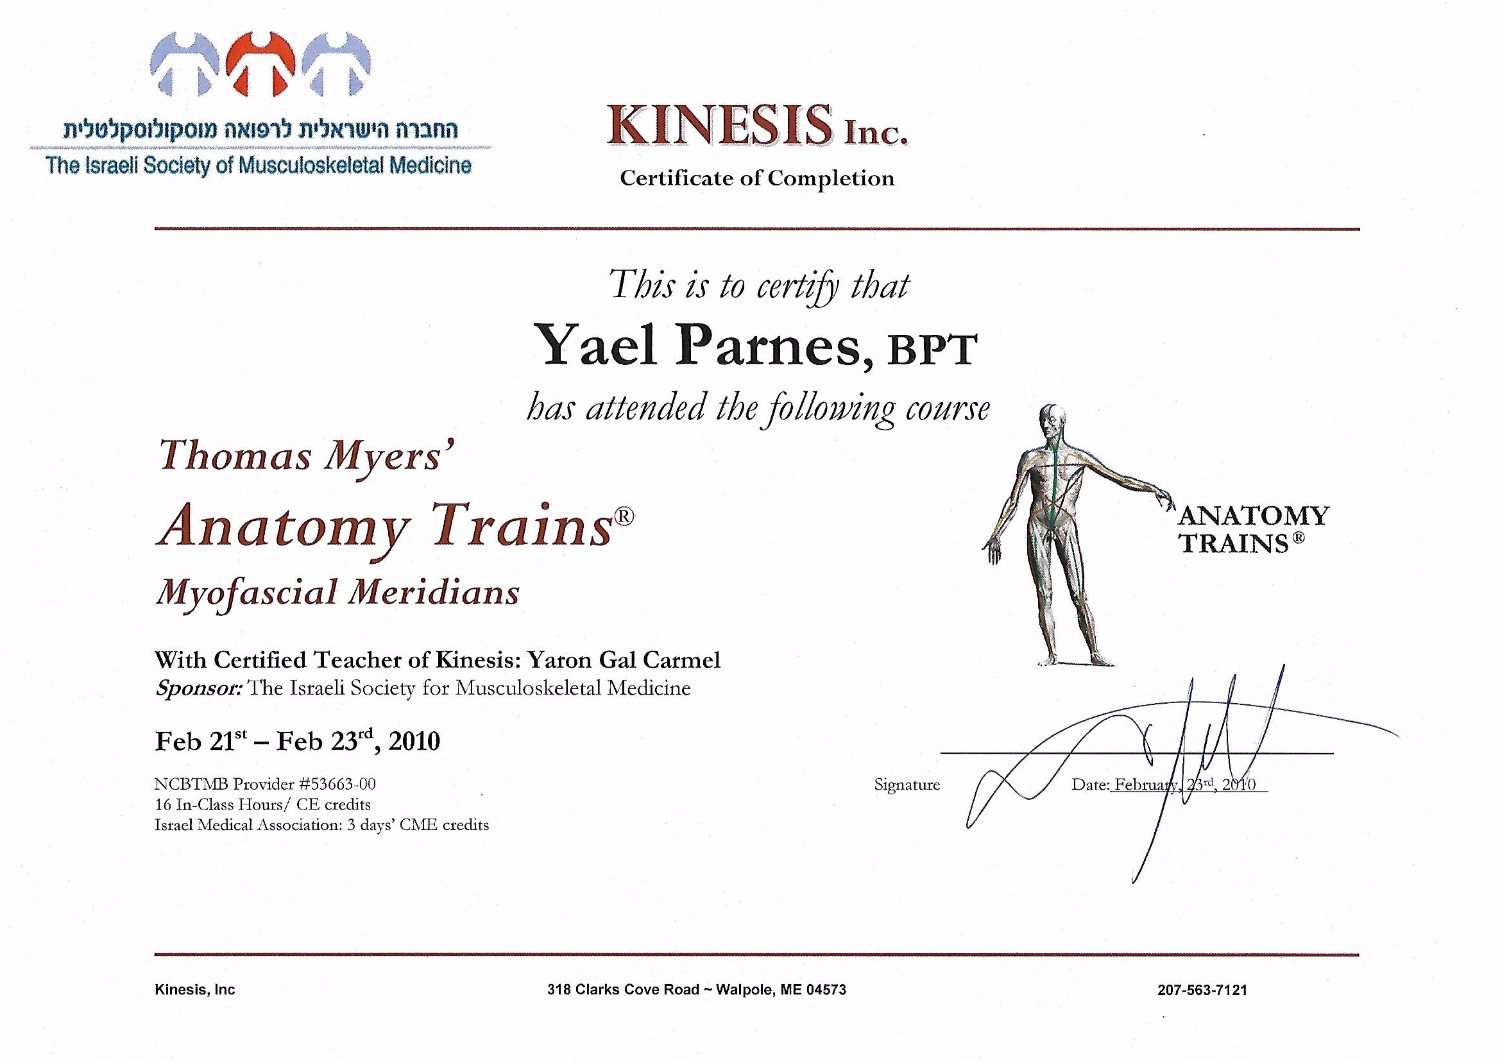 Anatomy Trains  - Myofacial Merians_edited